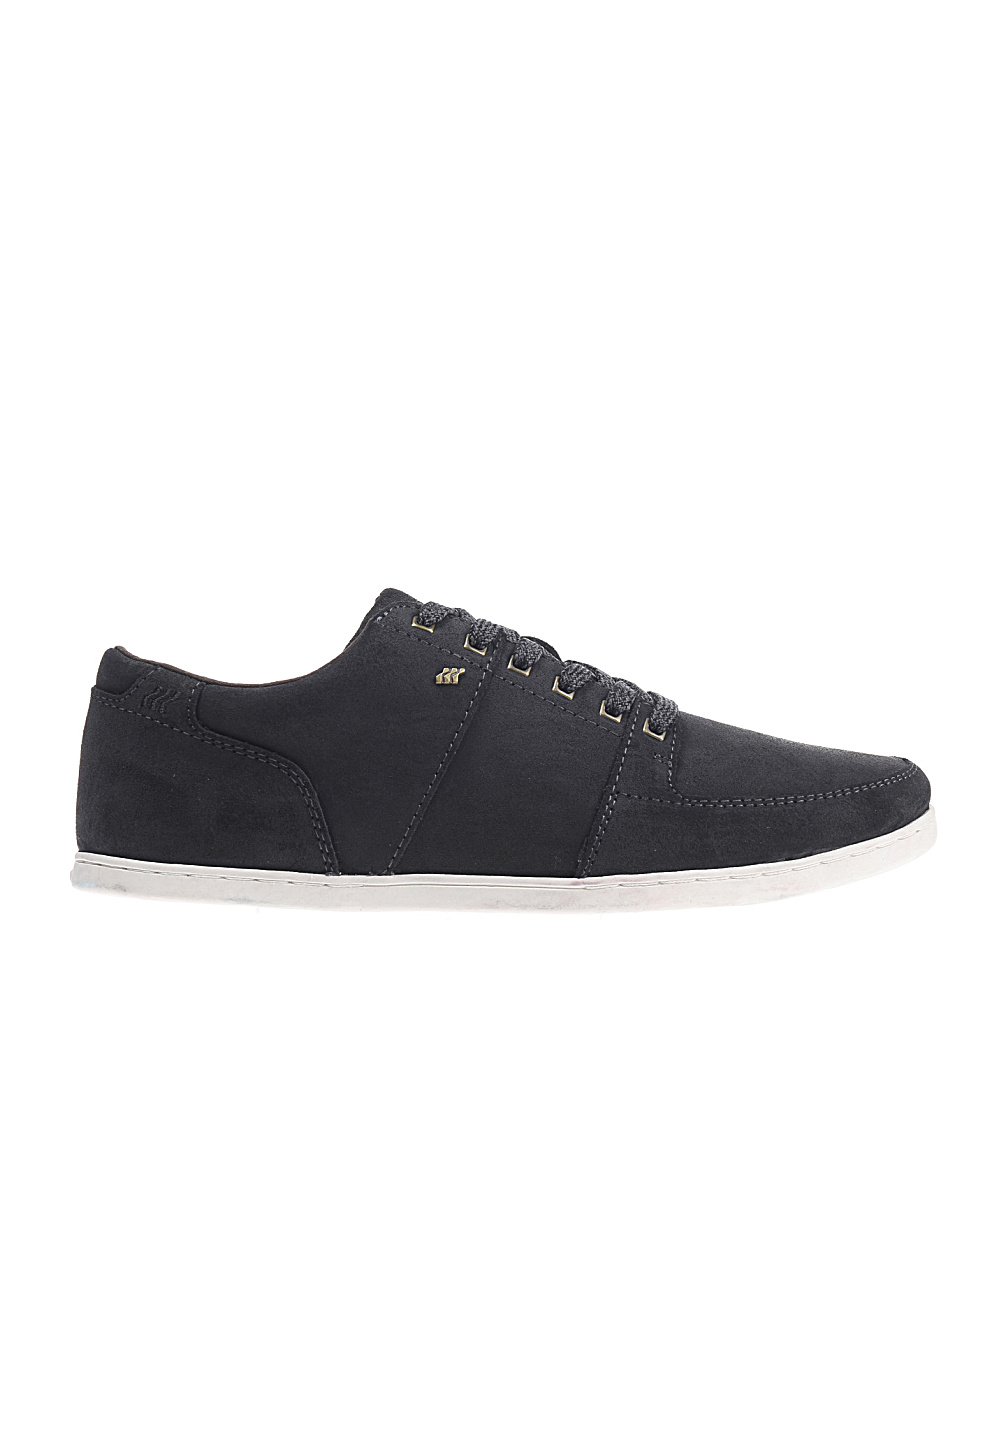 ... BOXFRESH Spencer SH Waxed Suede - Sneakers for Men - Black. Previous